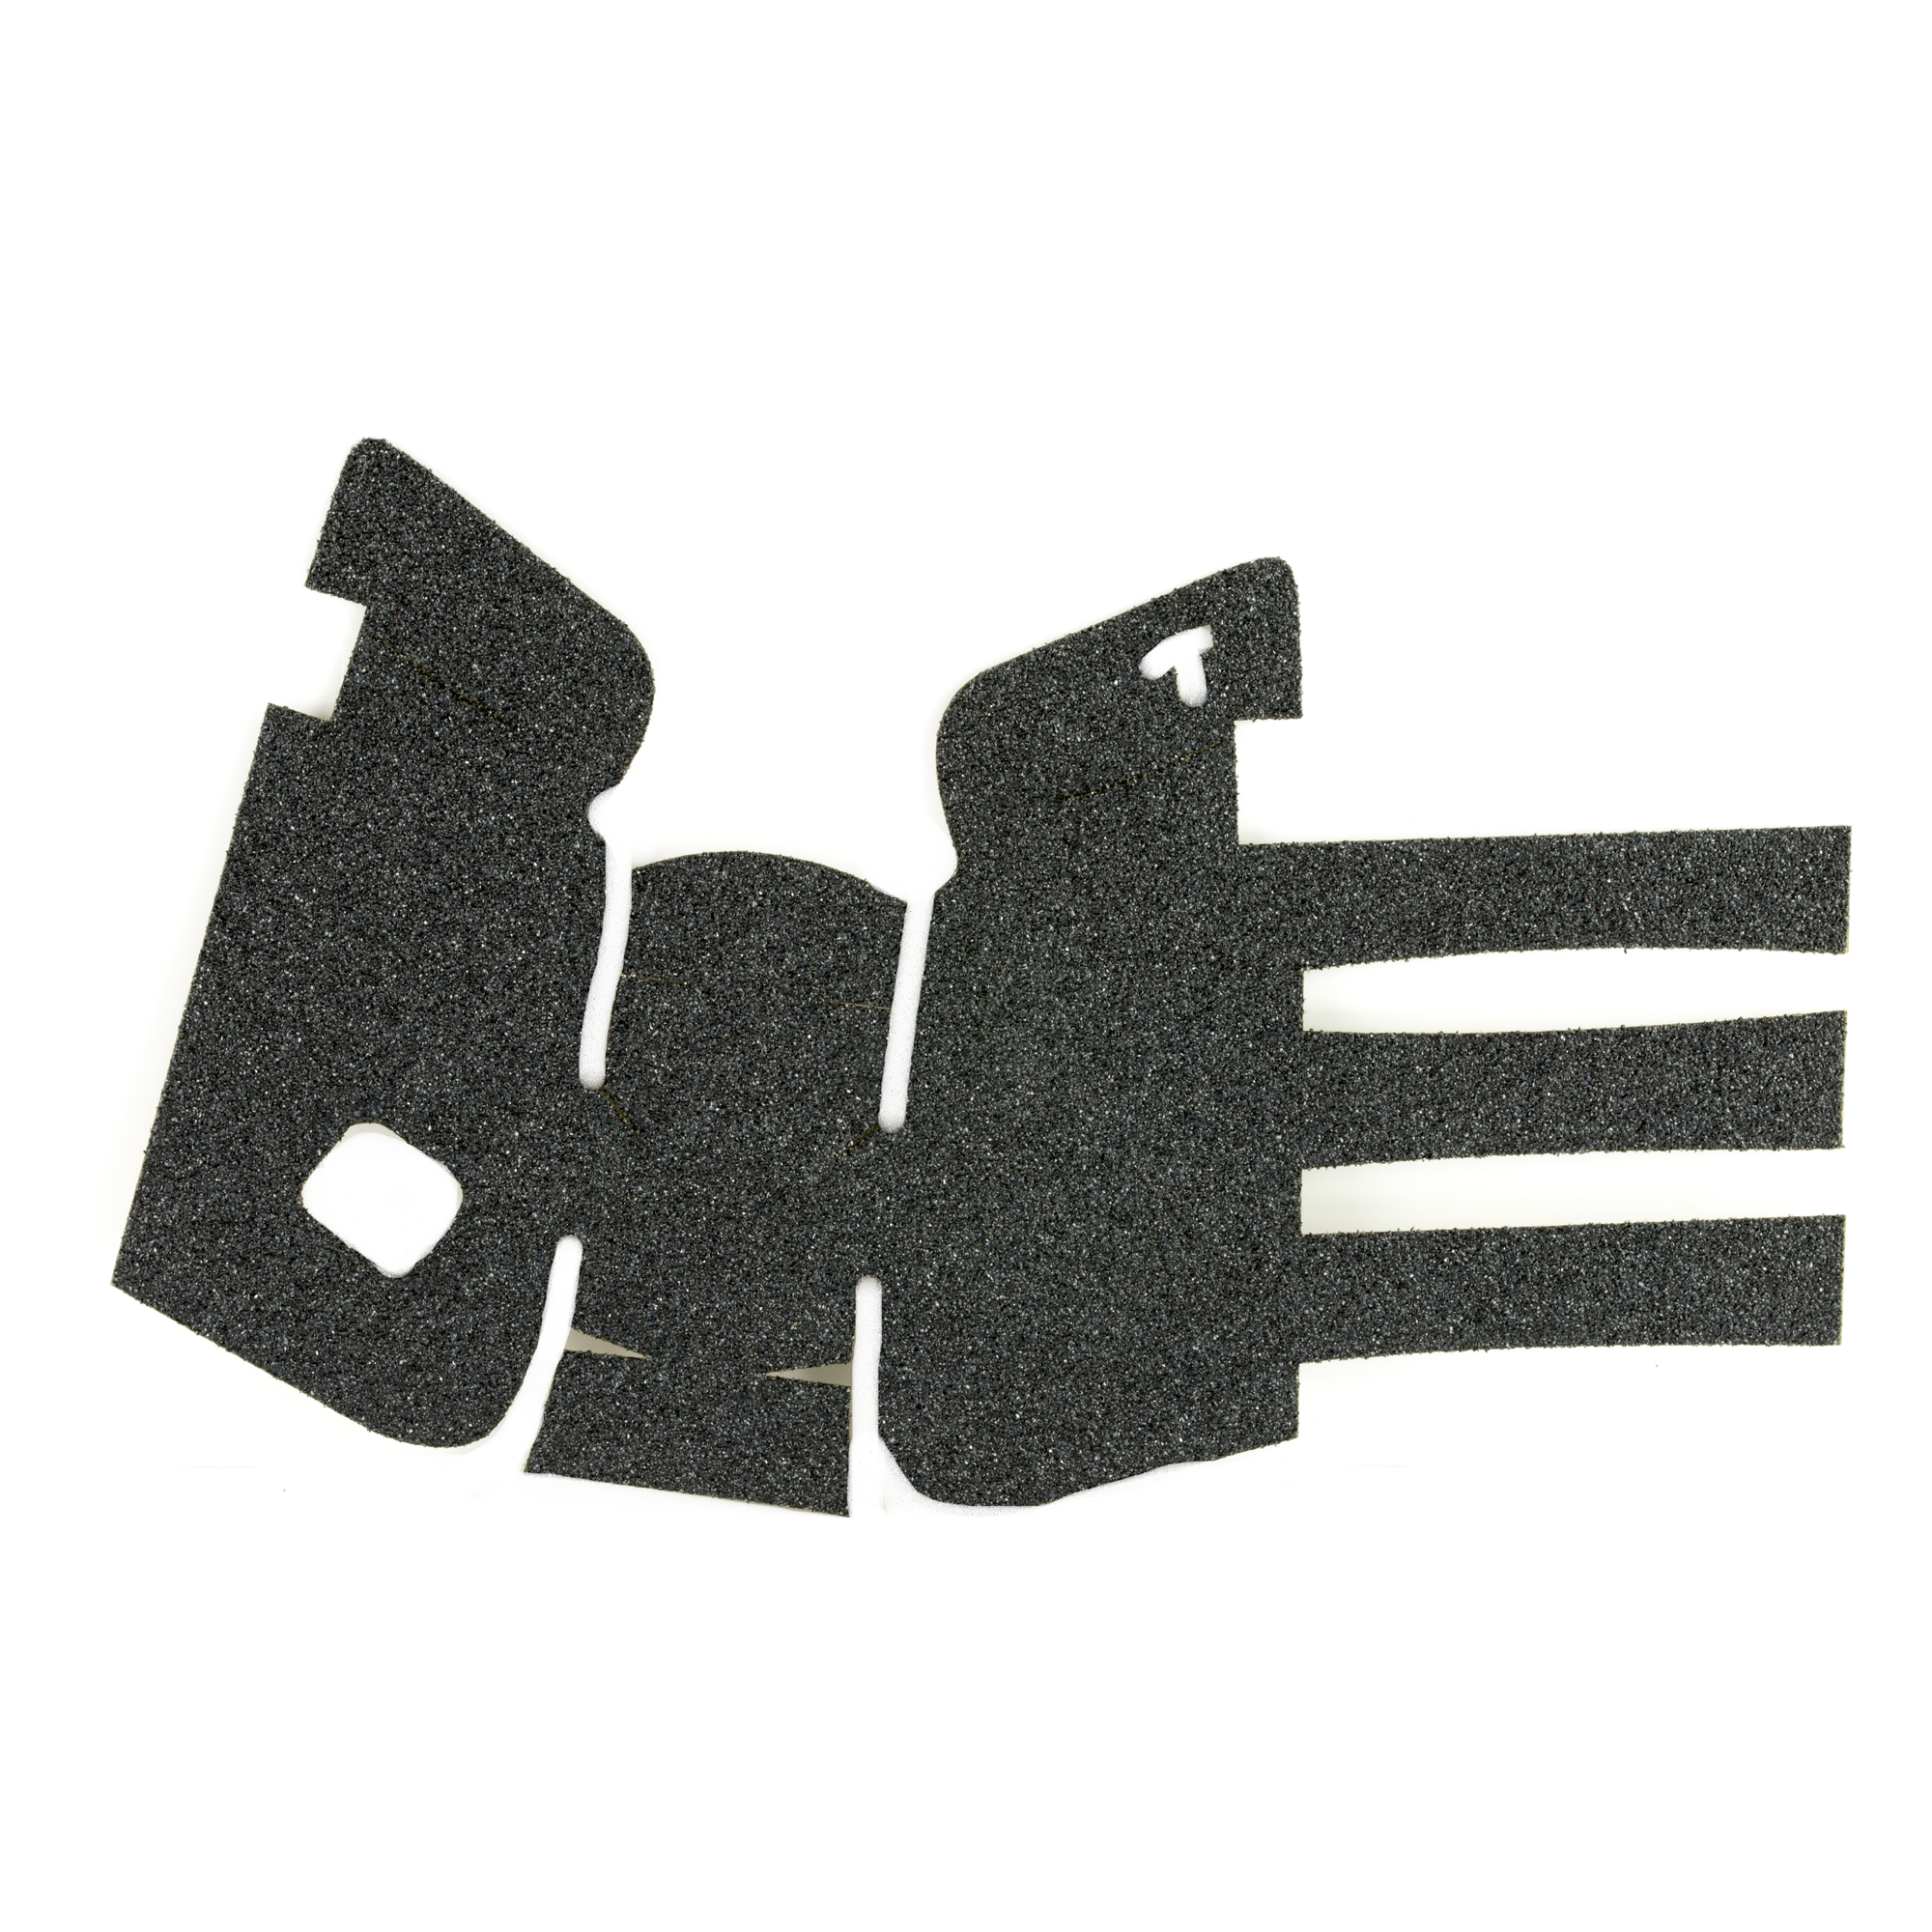 """TALON Grips for Gen 4 Glock 19"""" 23"""" 25"""" 32"""" and 38 models with No Backstrap. This rear wrap grip is in the granulate texture. This grip provides full coverage on the side panels including above the thumb rest"""" ample coverage on the backstrap"""" and three finger wraps for the finger groves under the trigger guard. This grip has a logo cutout for the Glock emblem on the left side of the handle. This grip sticks extremely well even with the Rough Textured Frame (RTF)."""